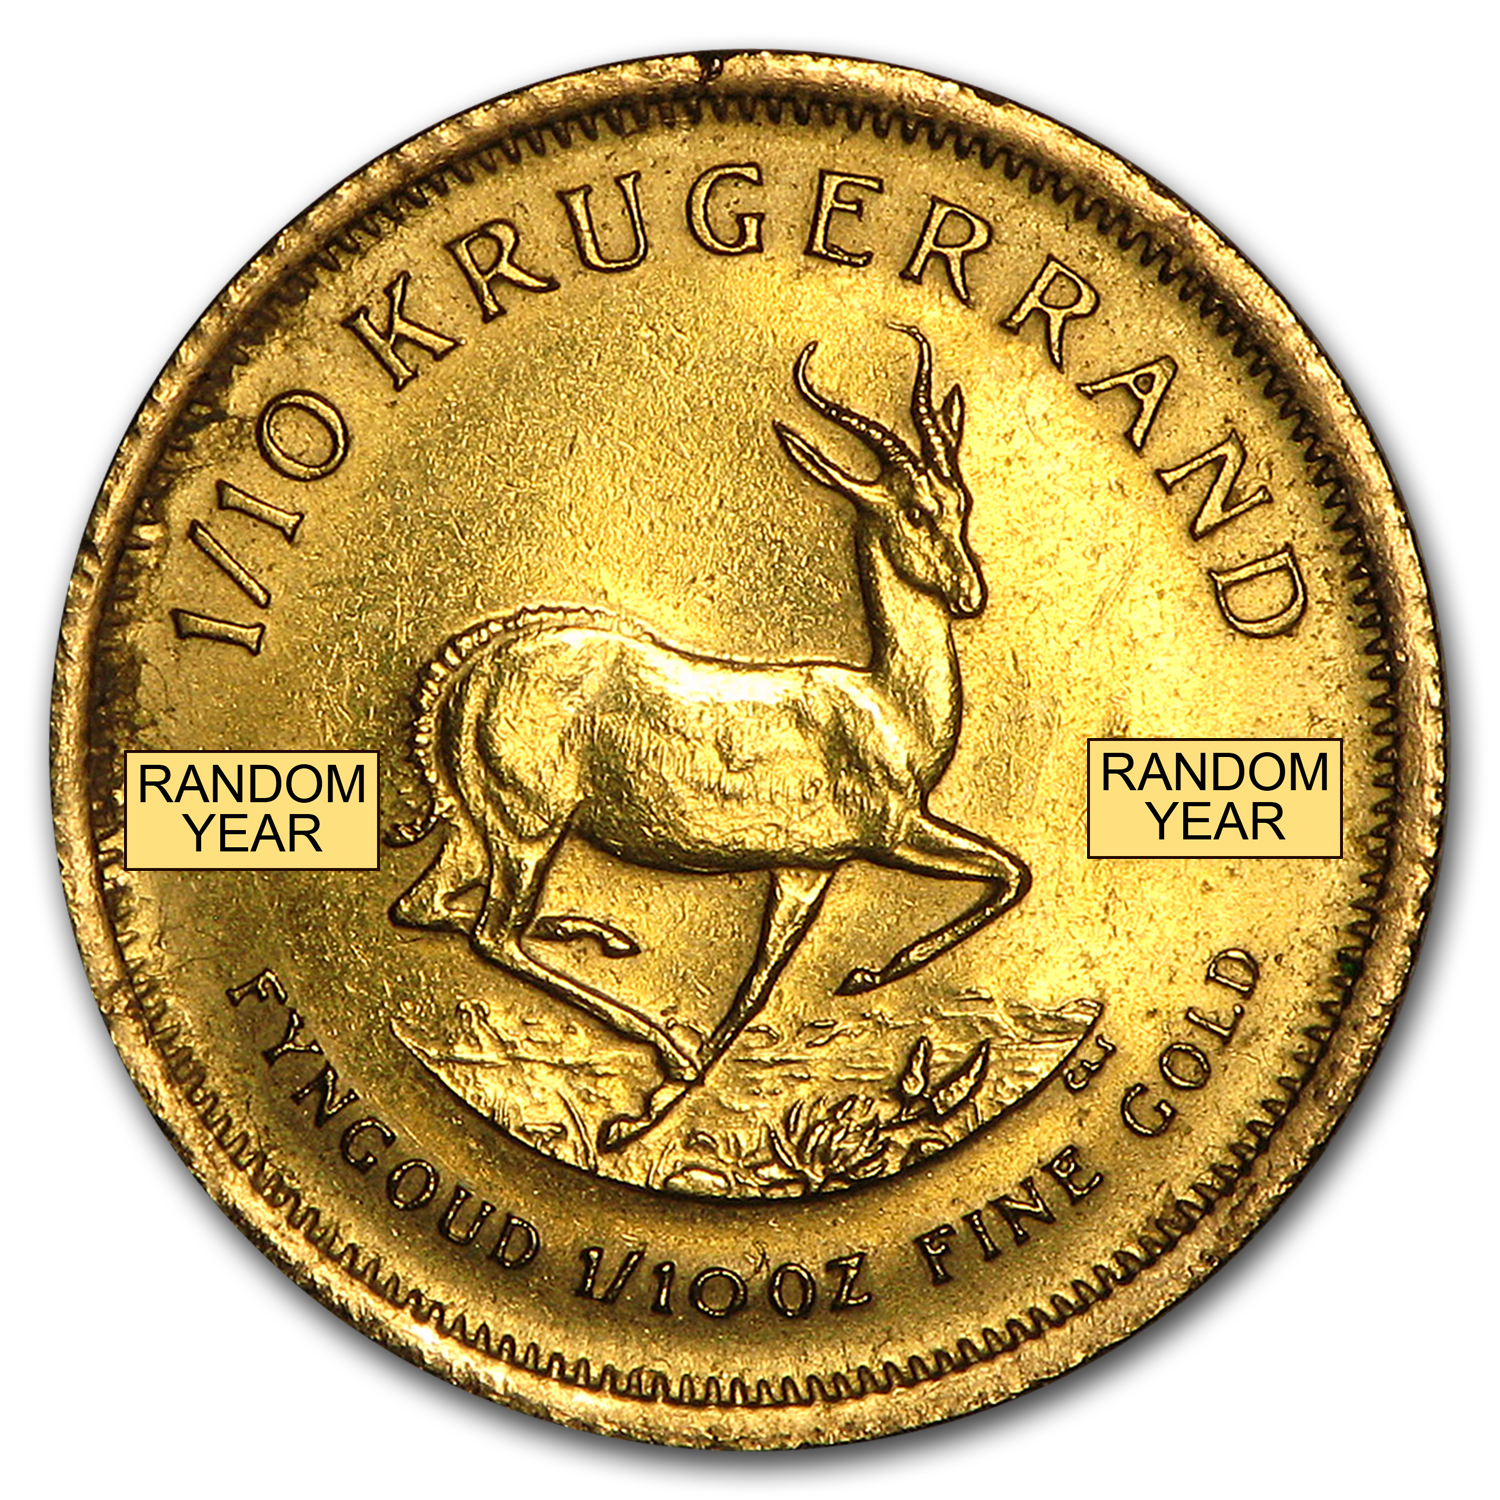 1/10 oz Gold South African Krugerrand (Abrasions)